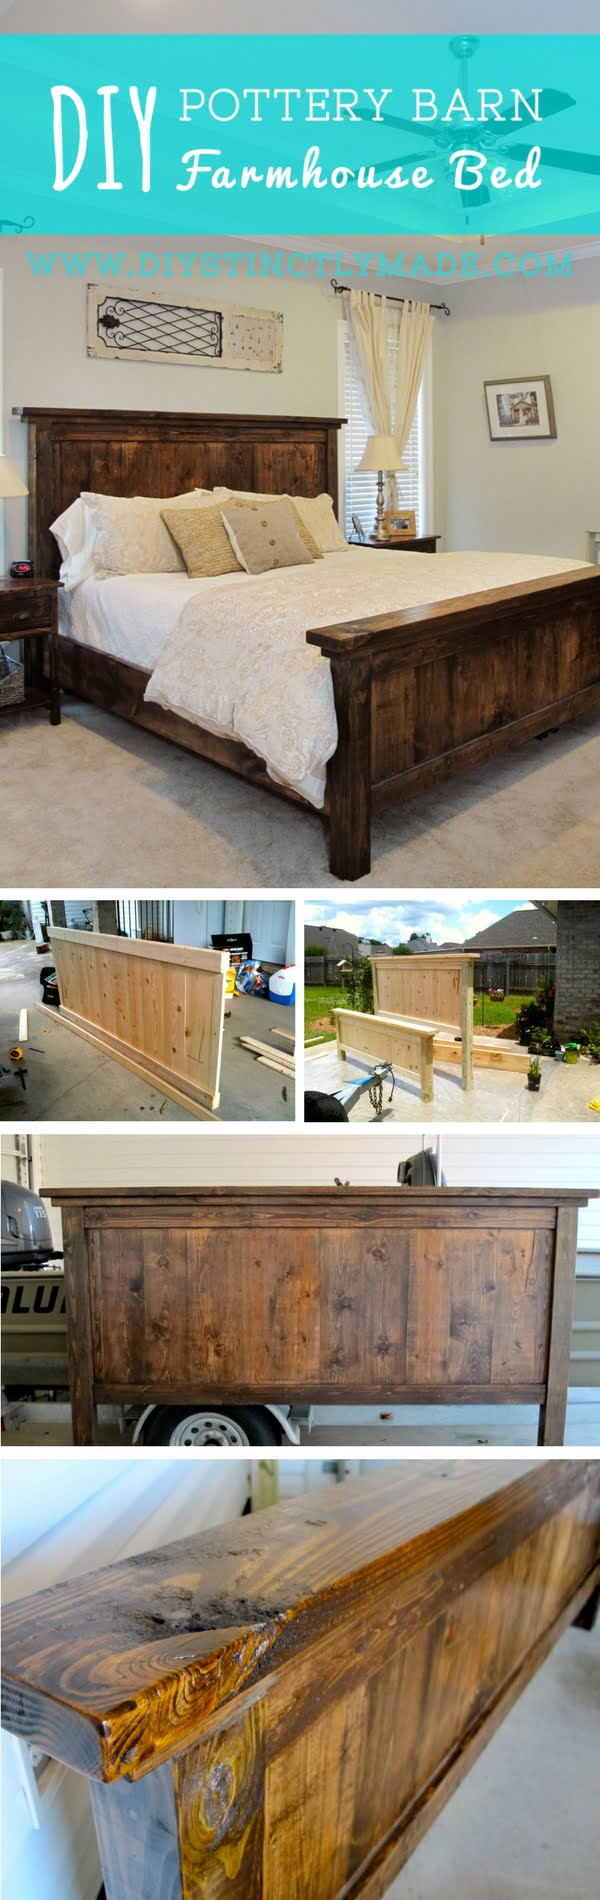 45 Easy DIY Bed Frame Projects You